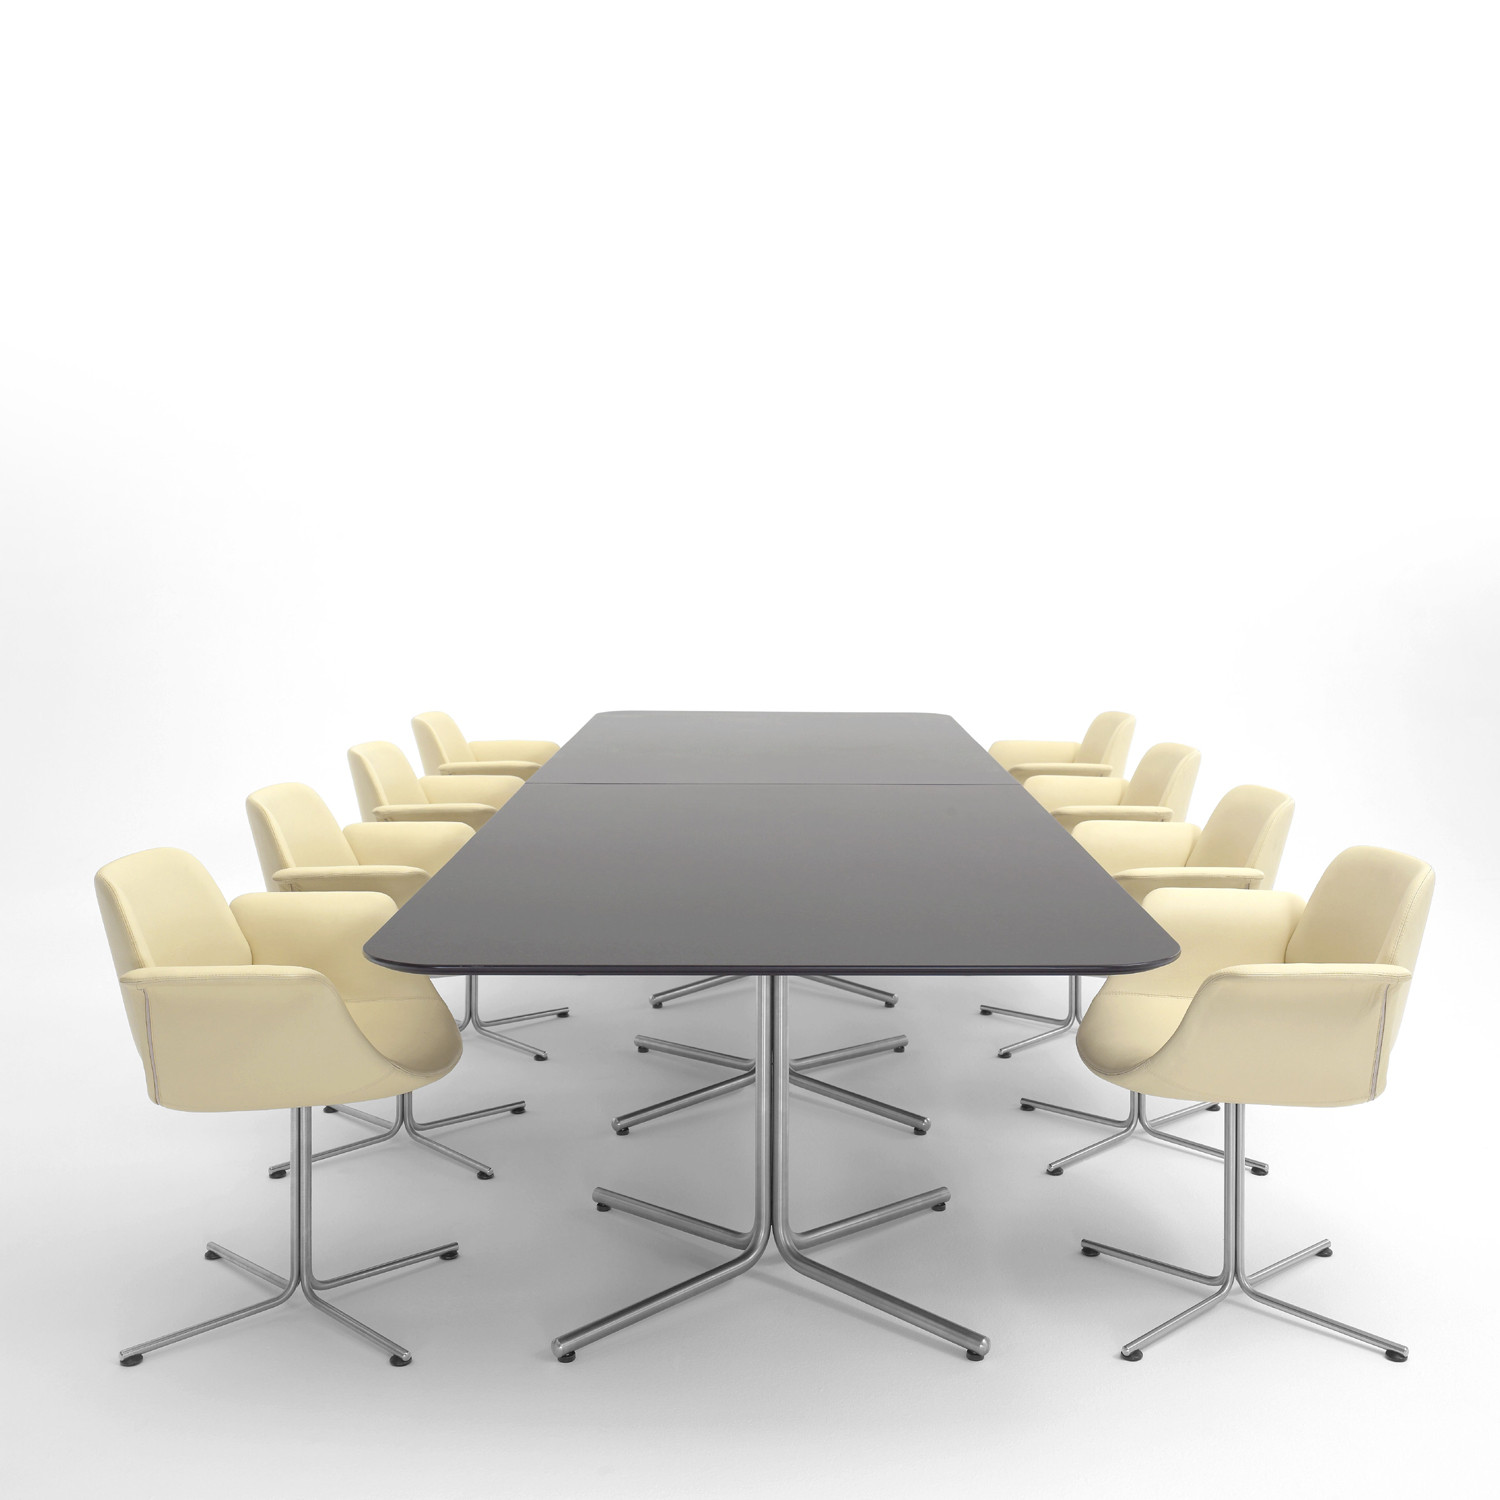 EJ 205 Flamingo Meeting Table